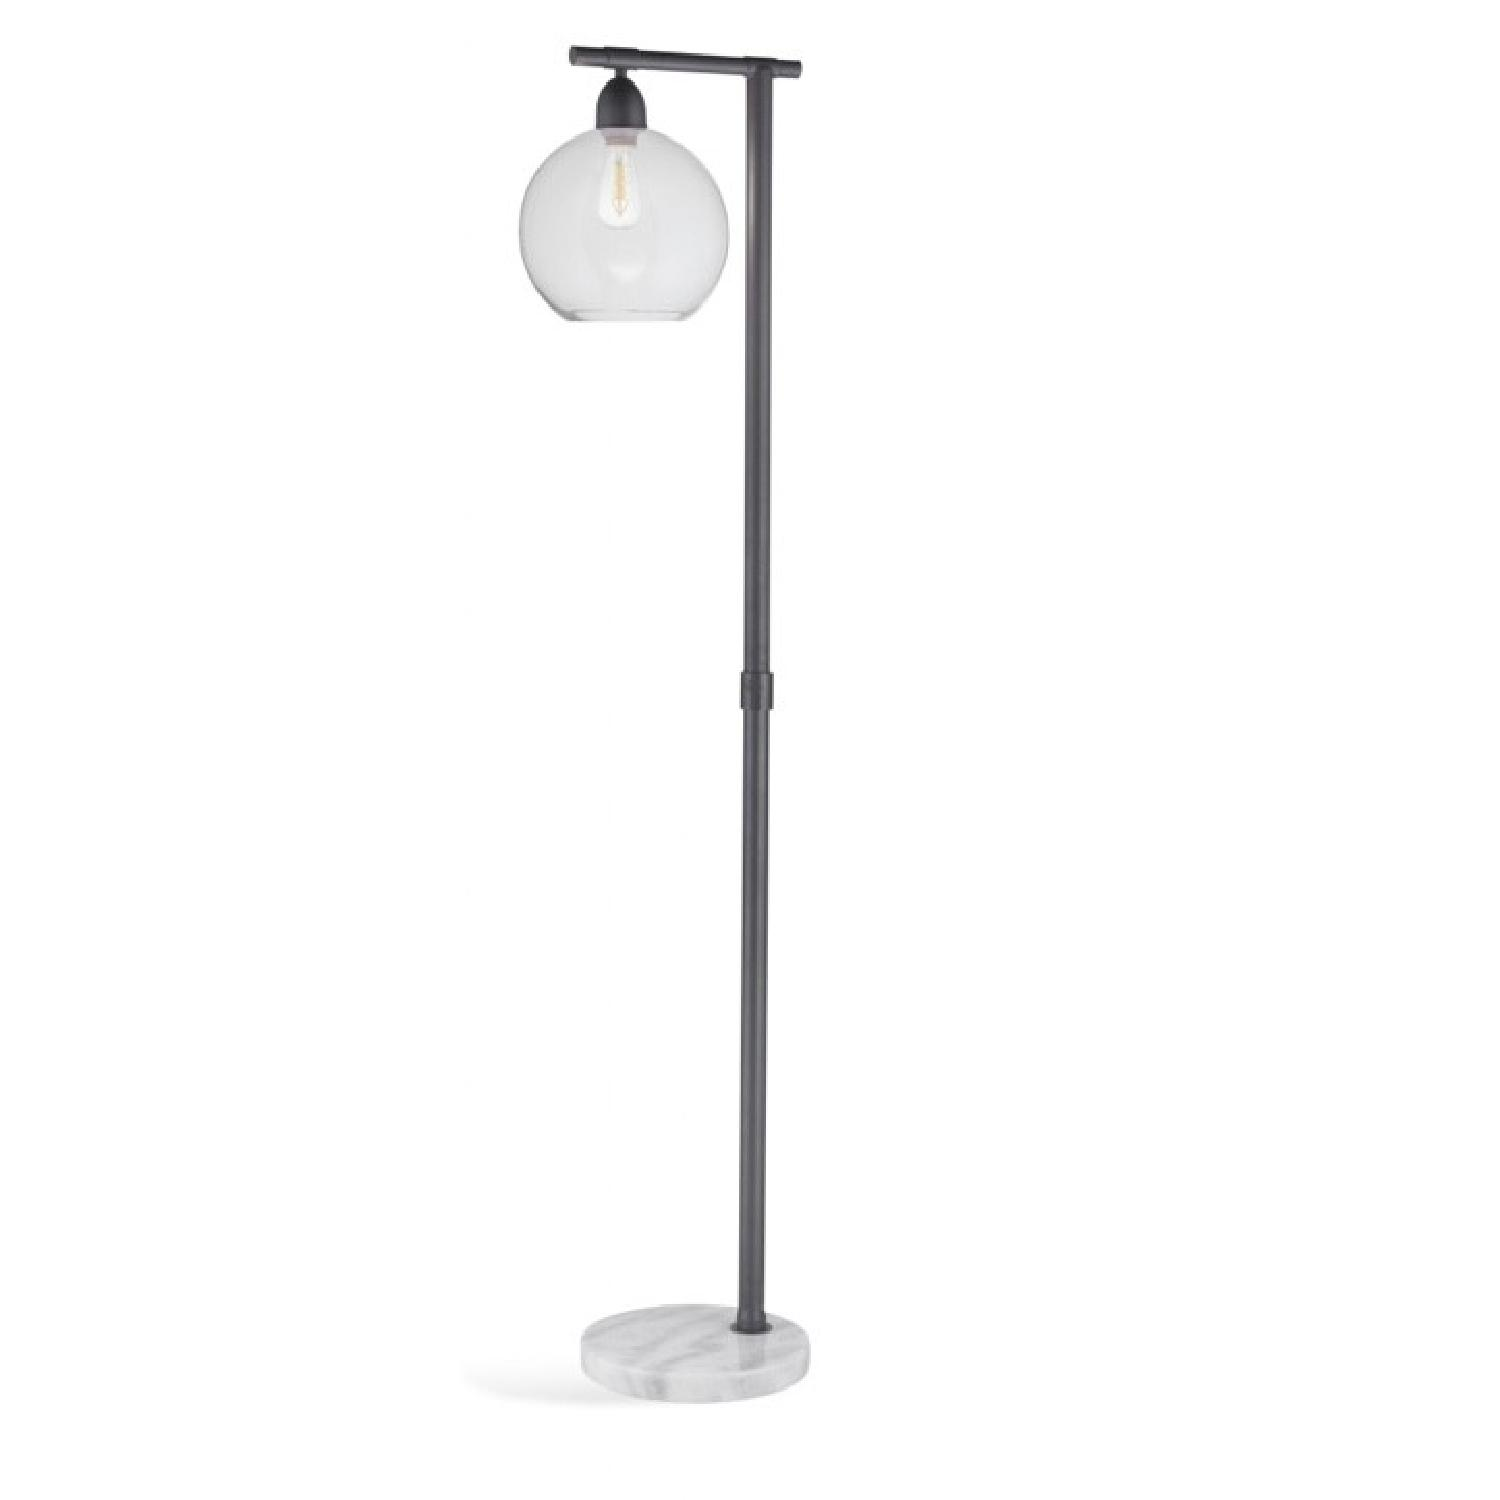 Bassett Hyde Glass Floor Lamp